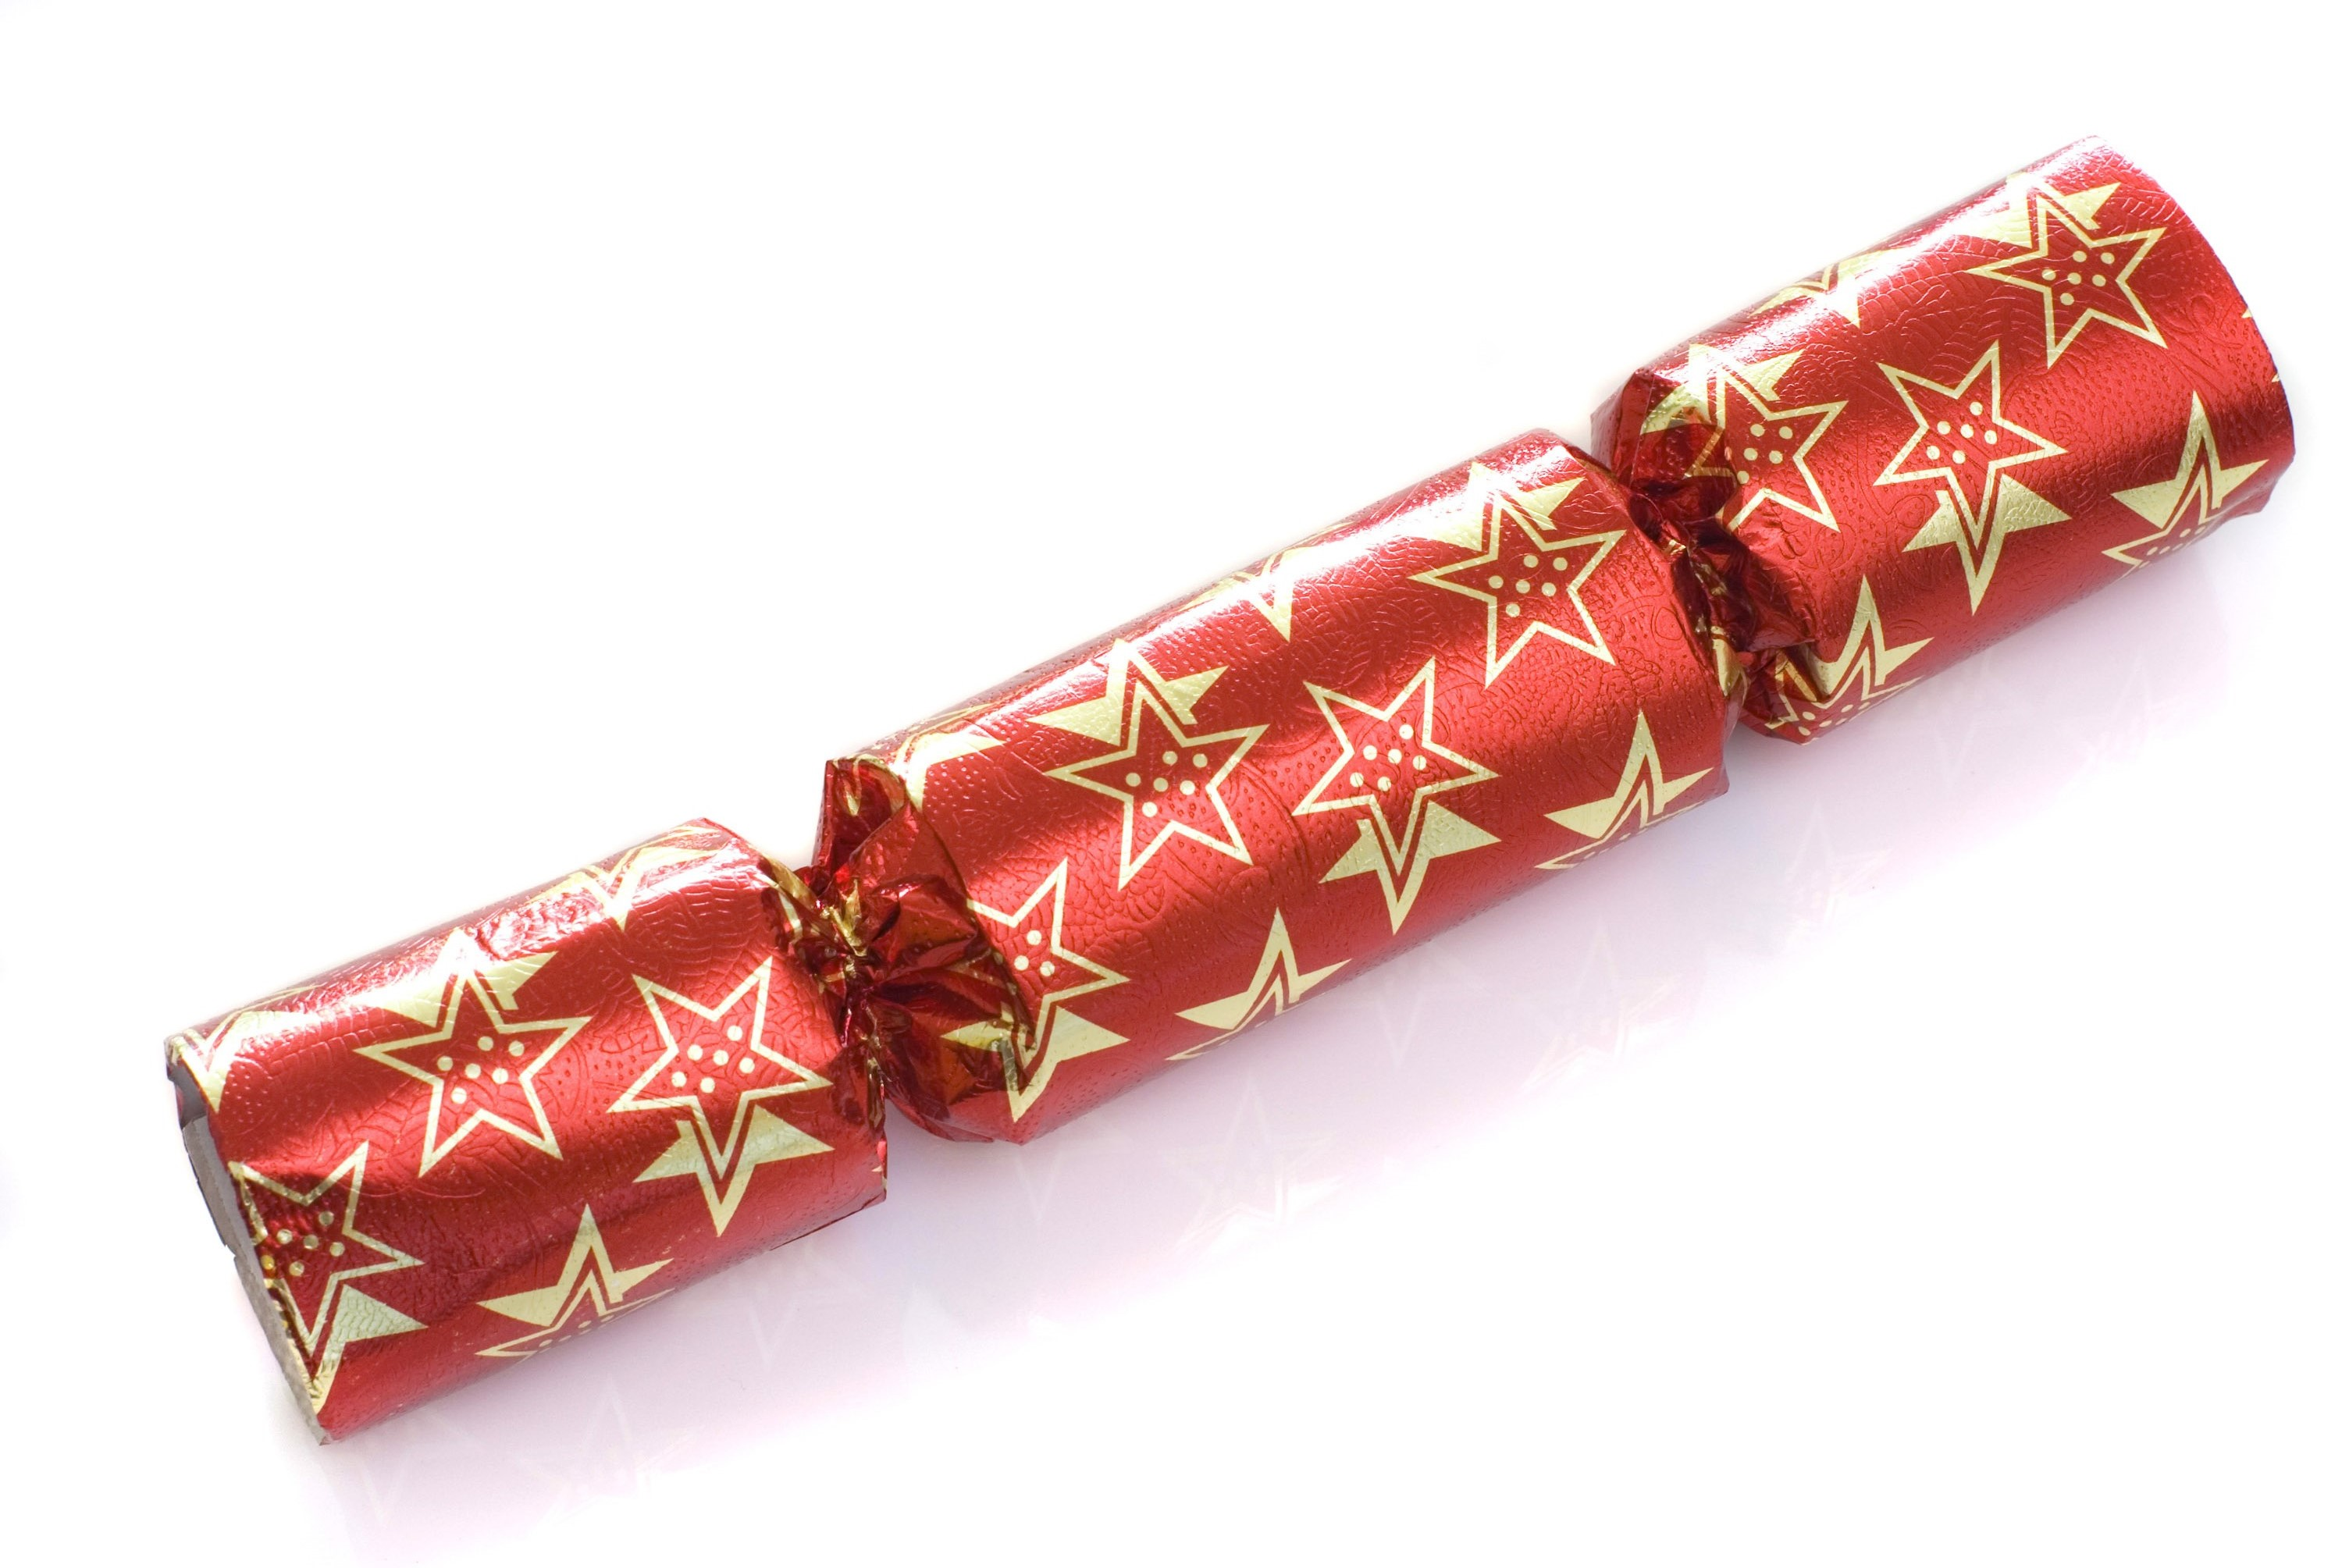 A single red christmas cracker isolated on a white background